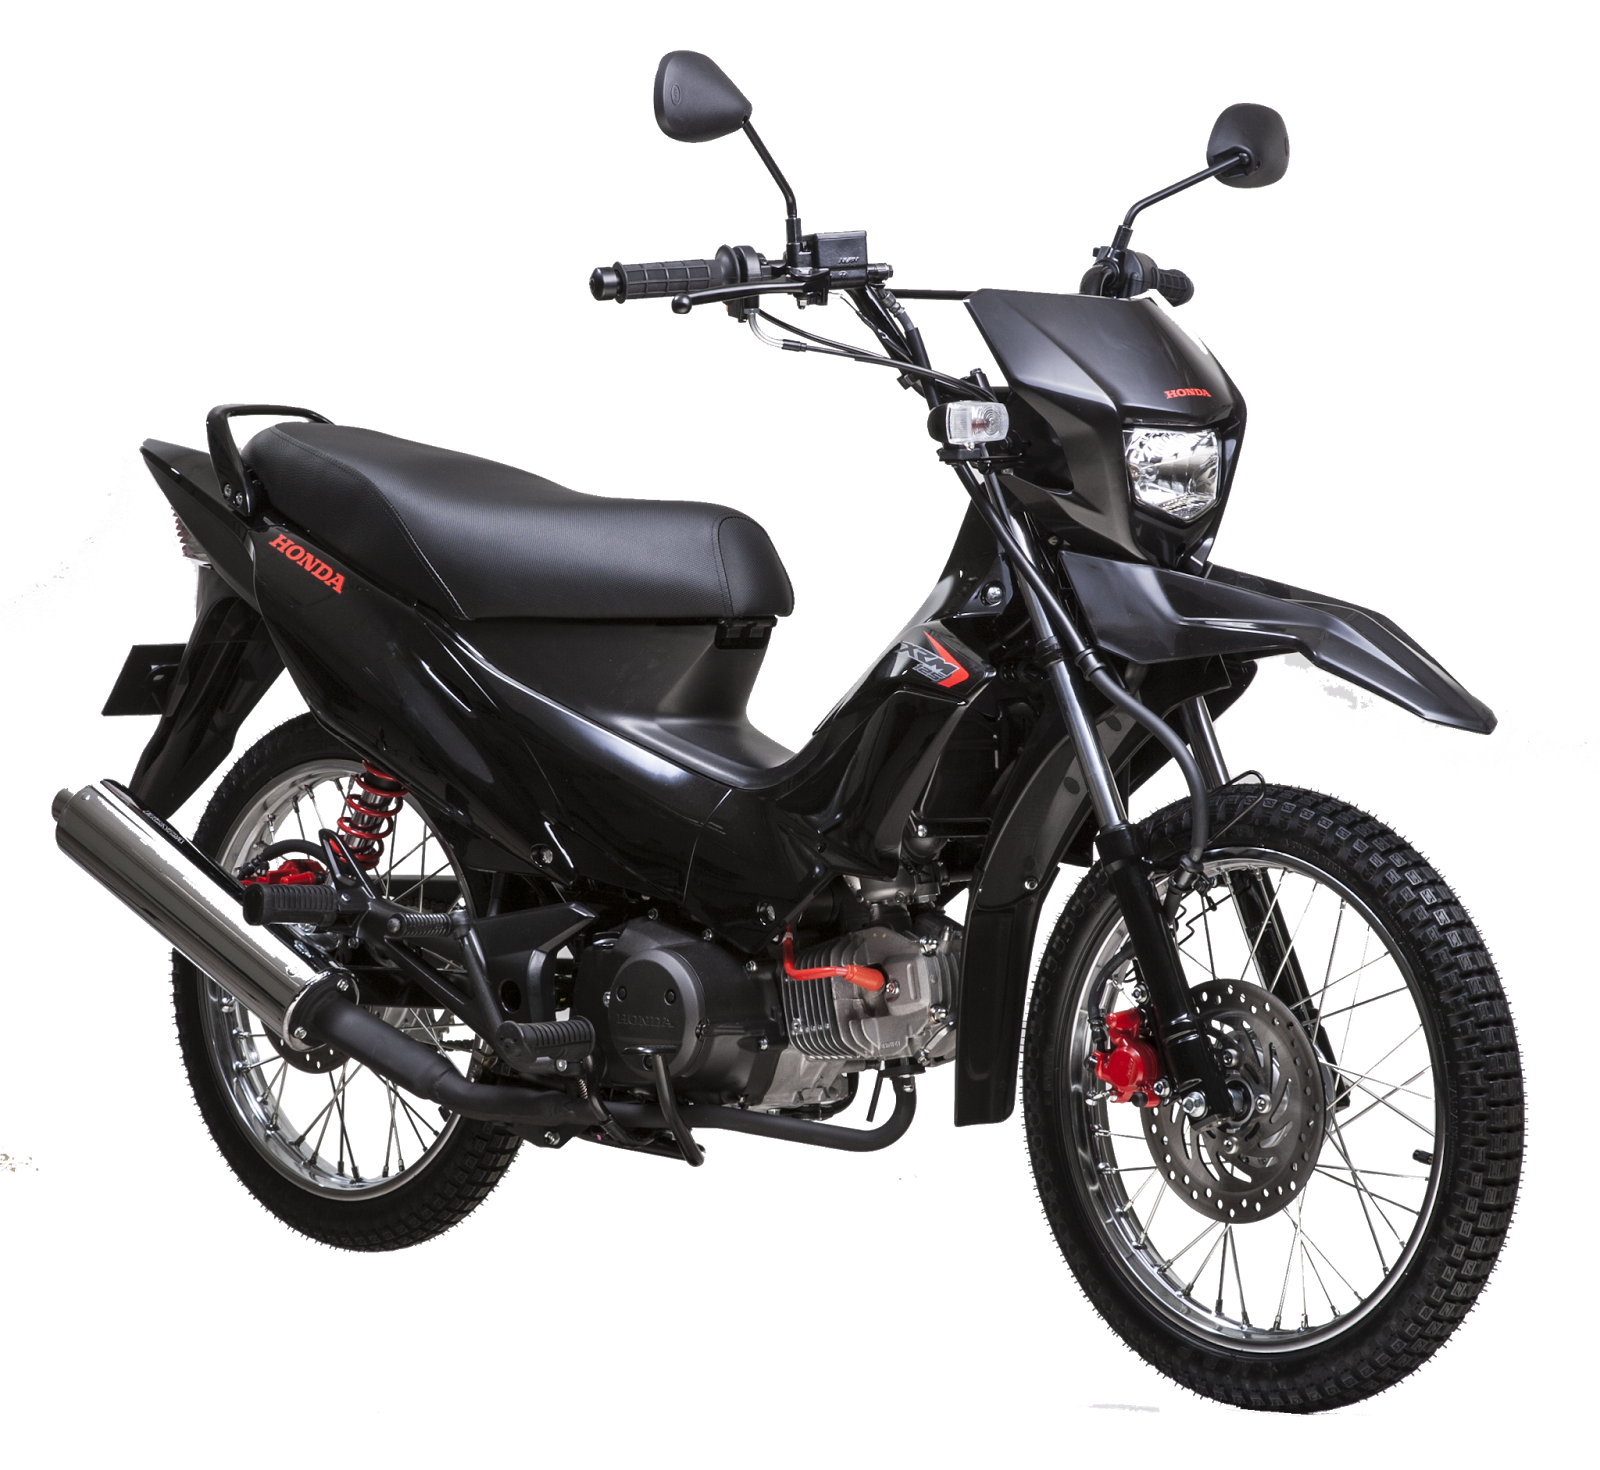 Honda launches the latest XRM 125 bikes in Davao City